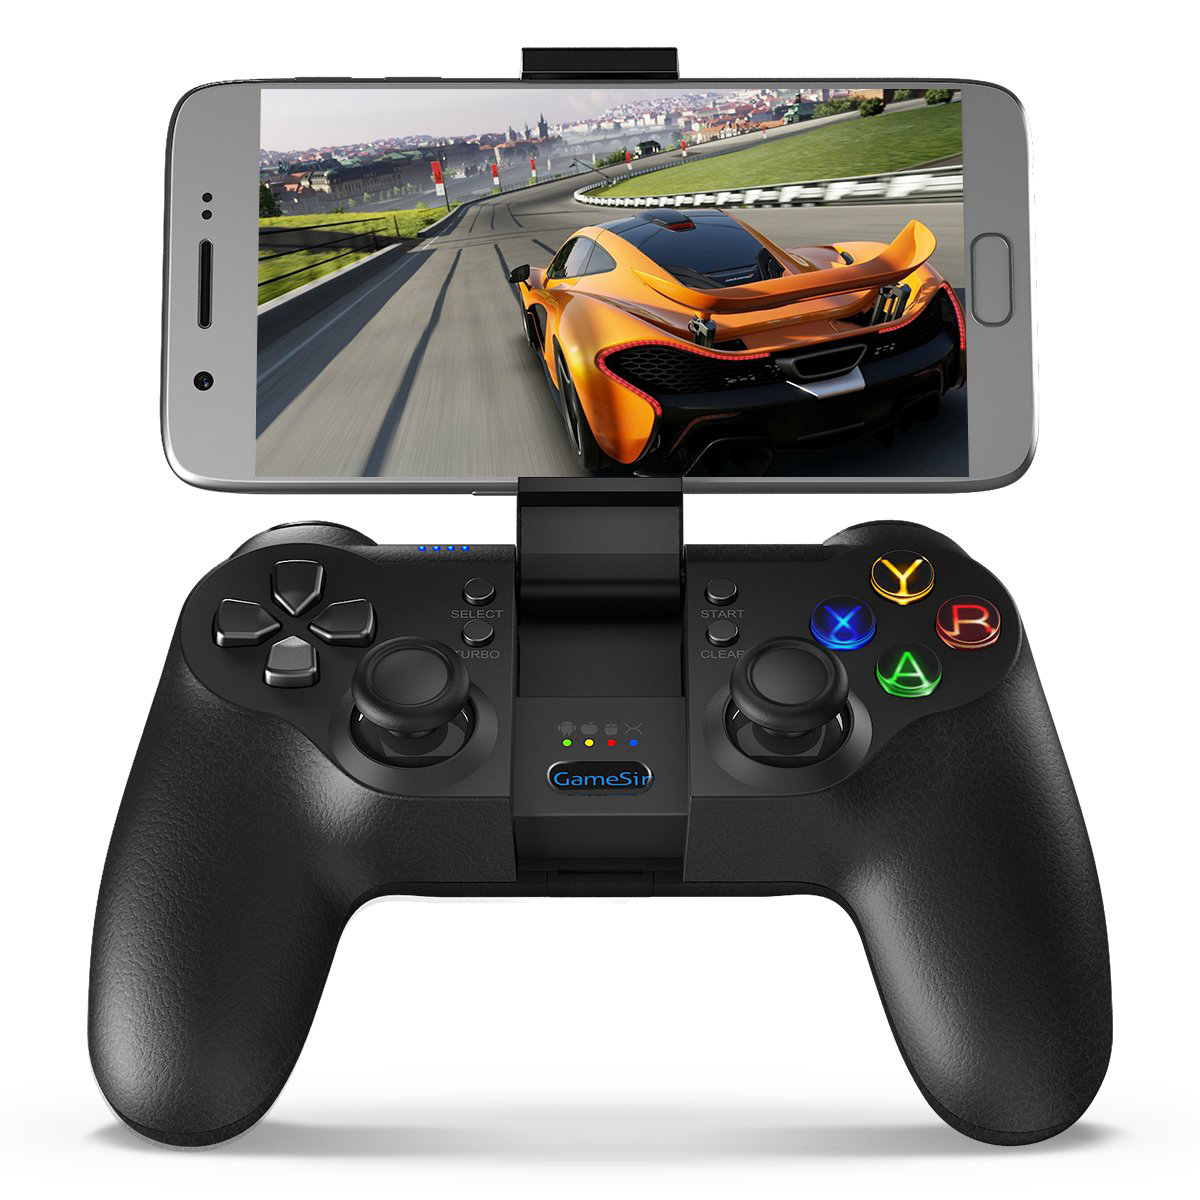 Picture of GameSir T1s Wireless Gamepad